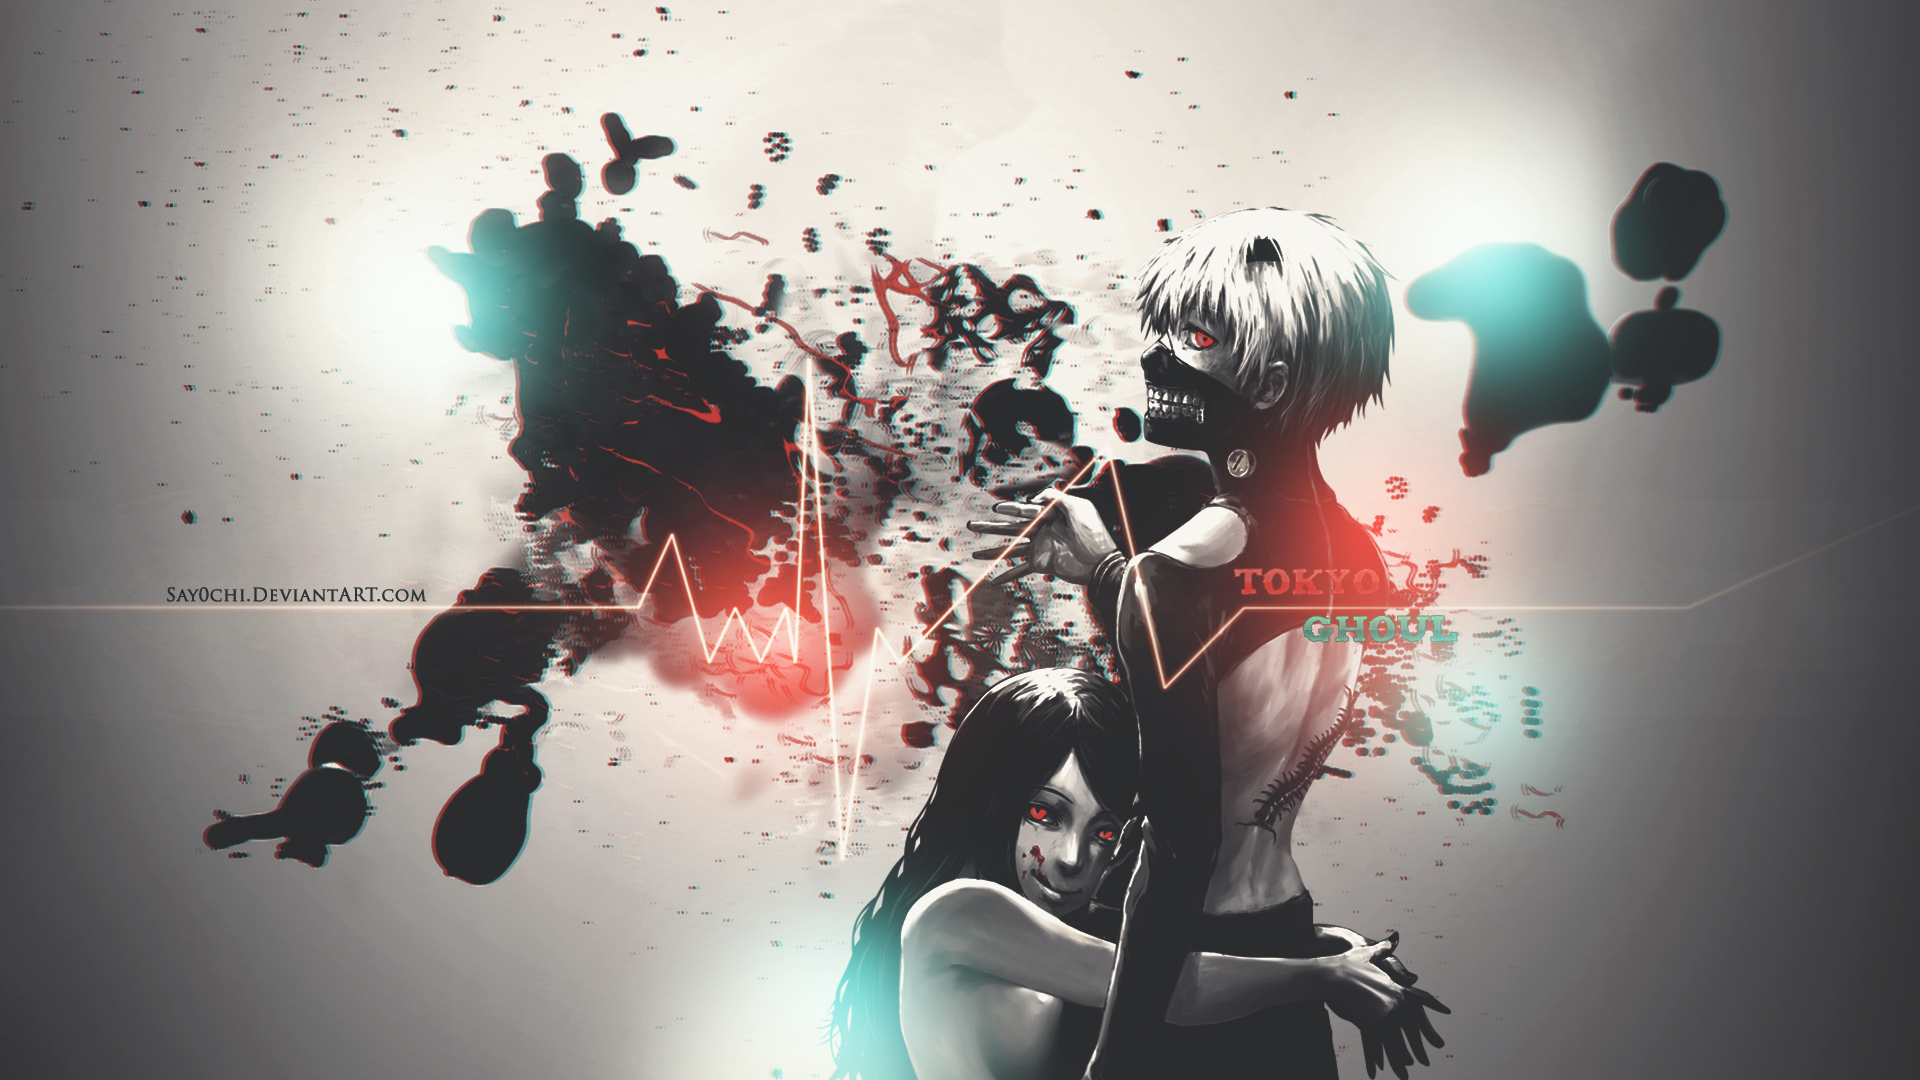 Tokyo Ghoul Wallpaper 1920 x 1080 [HD] by Say0chi 1920x1080